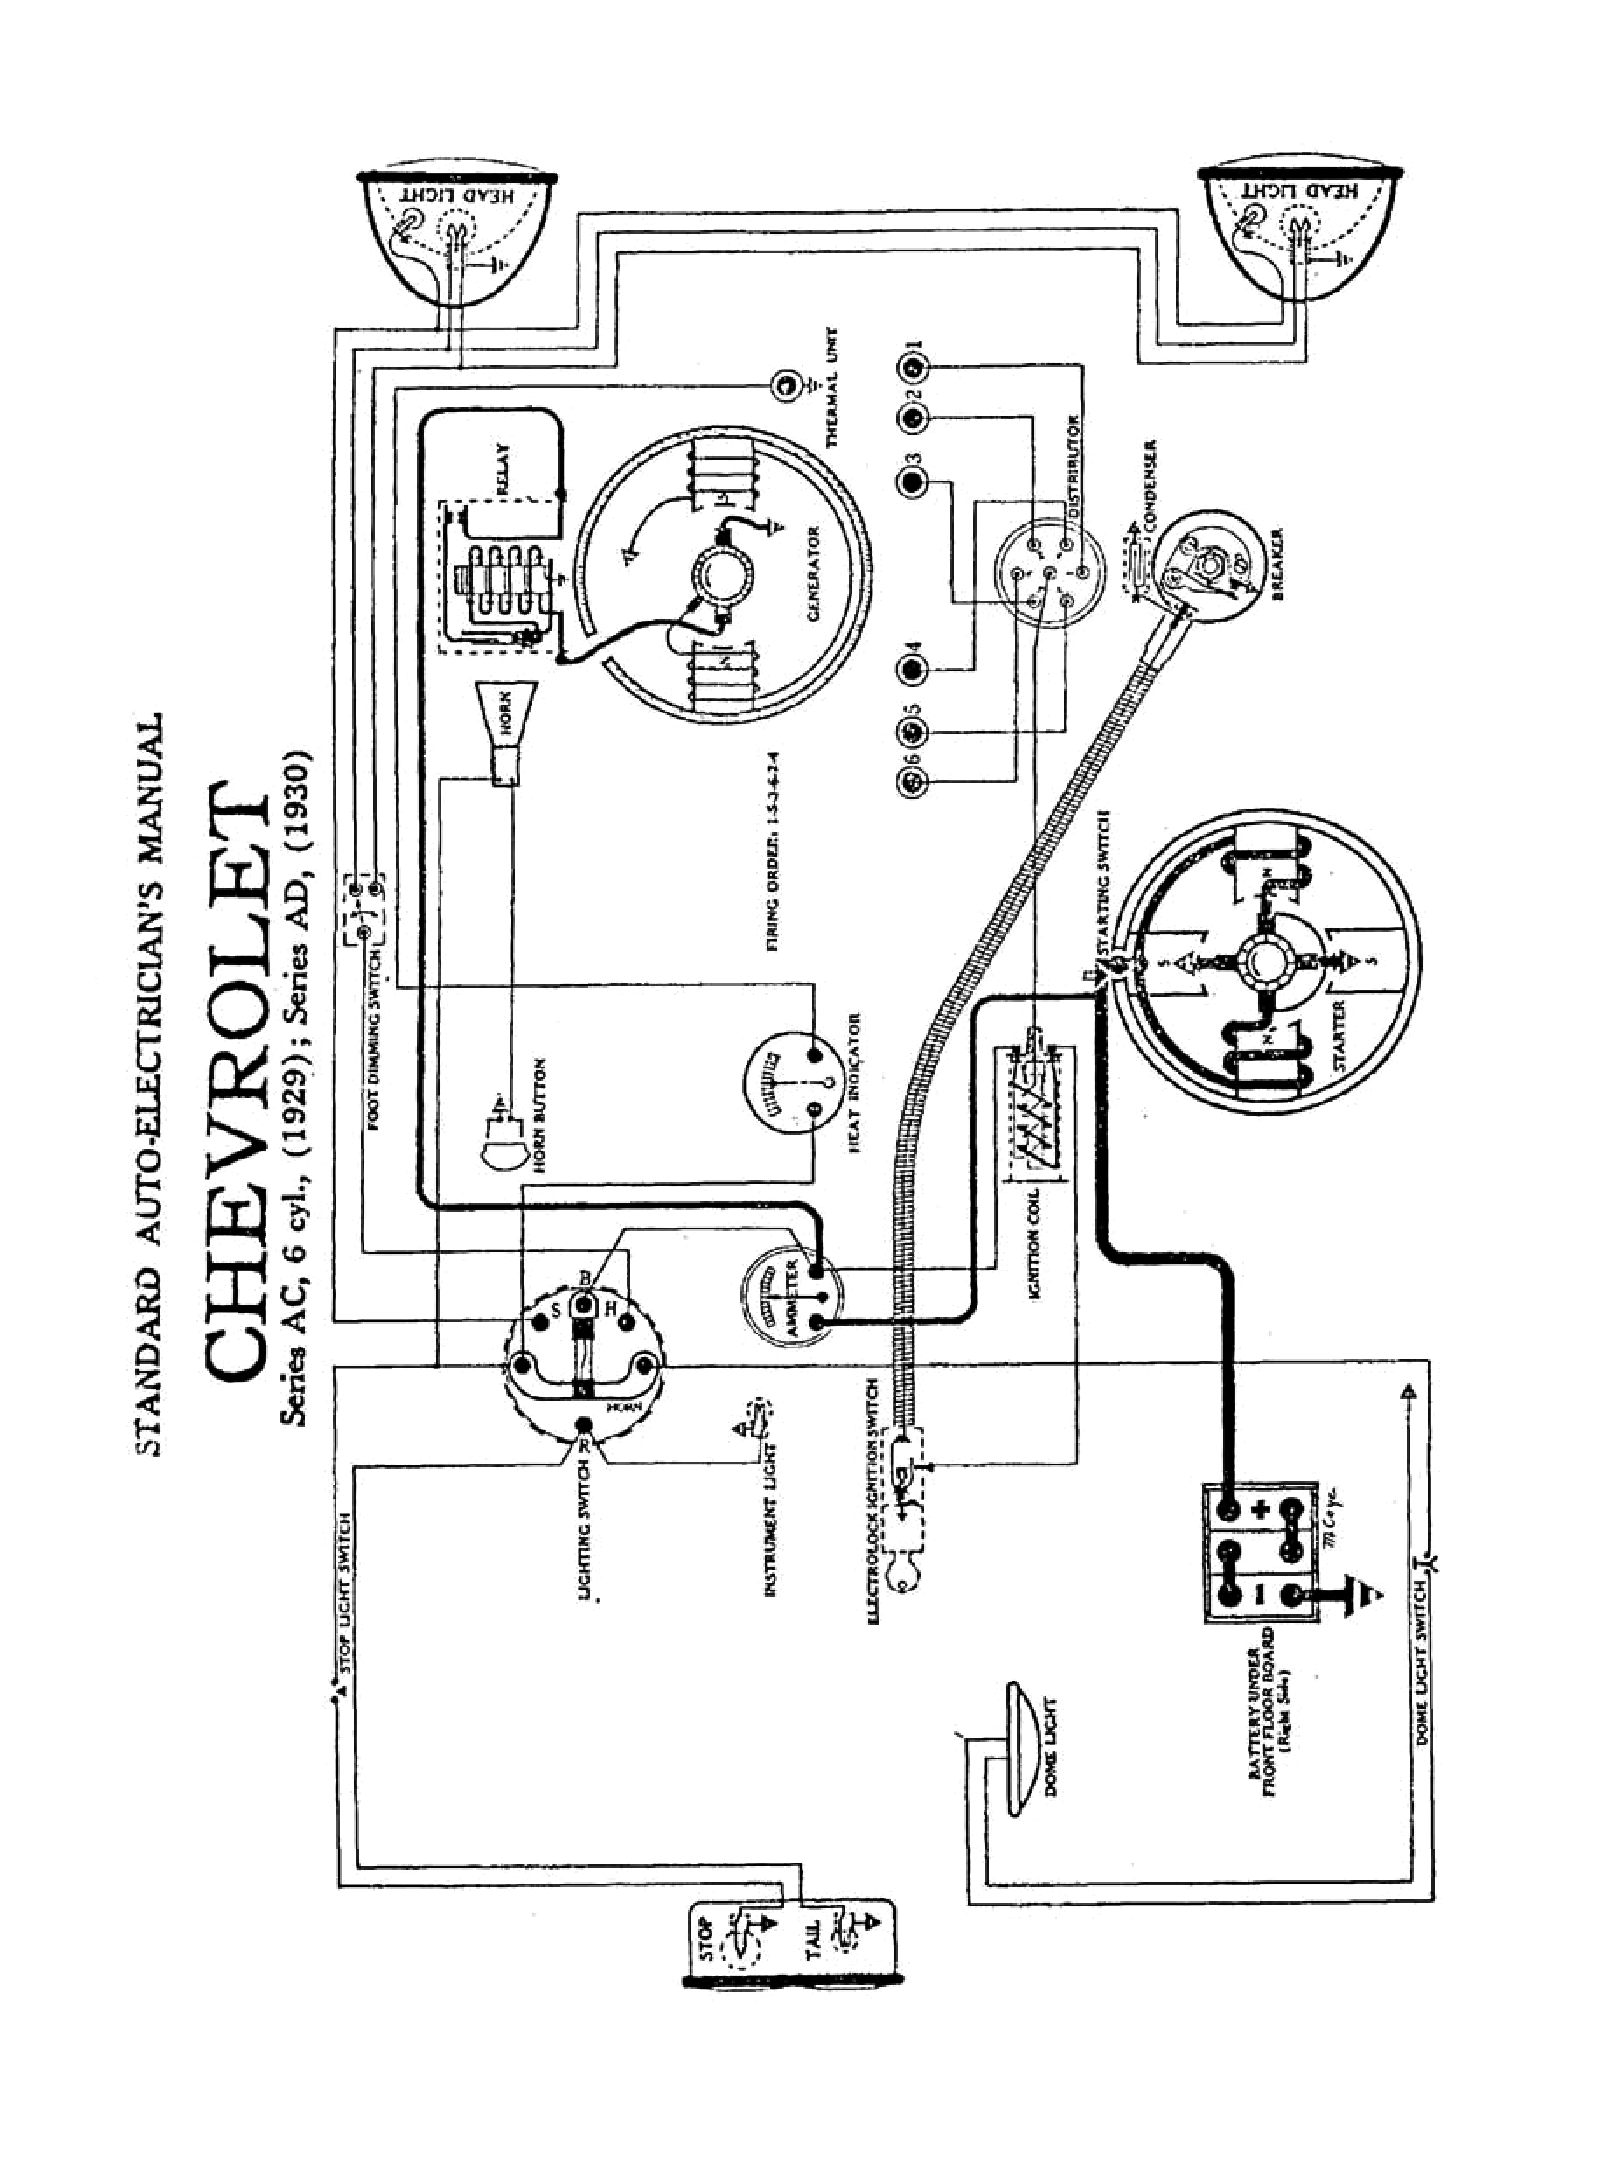 1949 chevy truck wiring harness wiring diagram k8 1951 Chevy Truck Wiring Harness Diagram 1951 chevy dash wiring wiring diagram